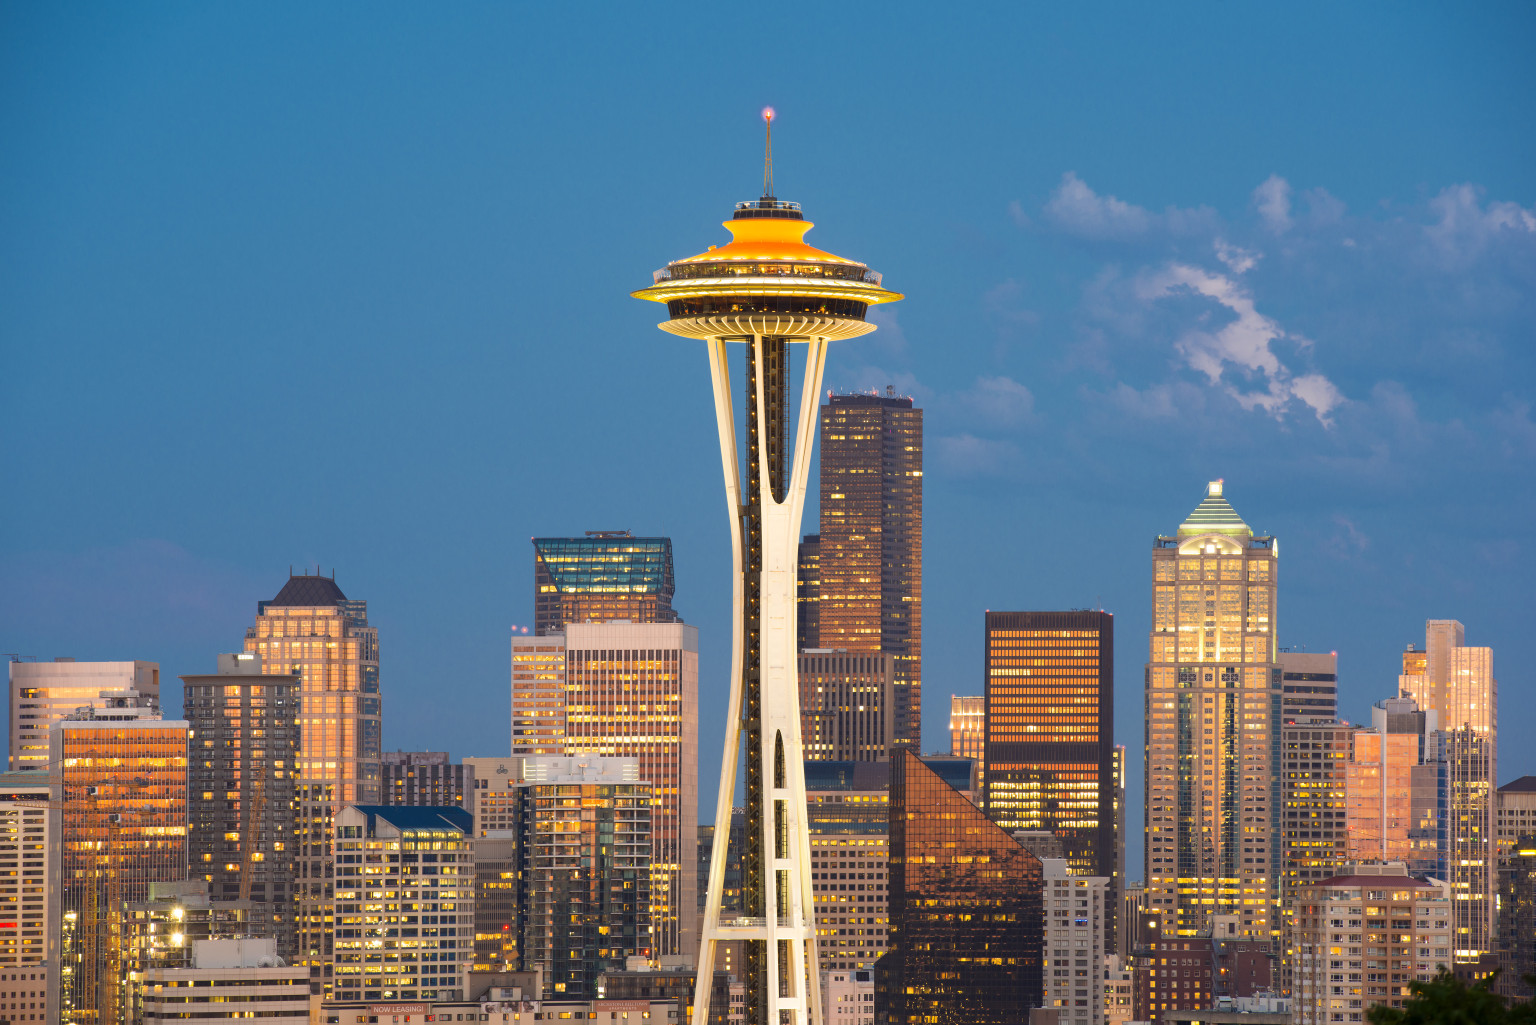 ... City To The Emerald City: 28 Hours In Seattle - Fox 2 News Headlines